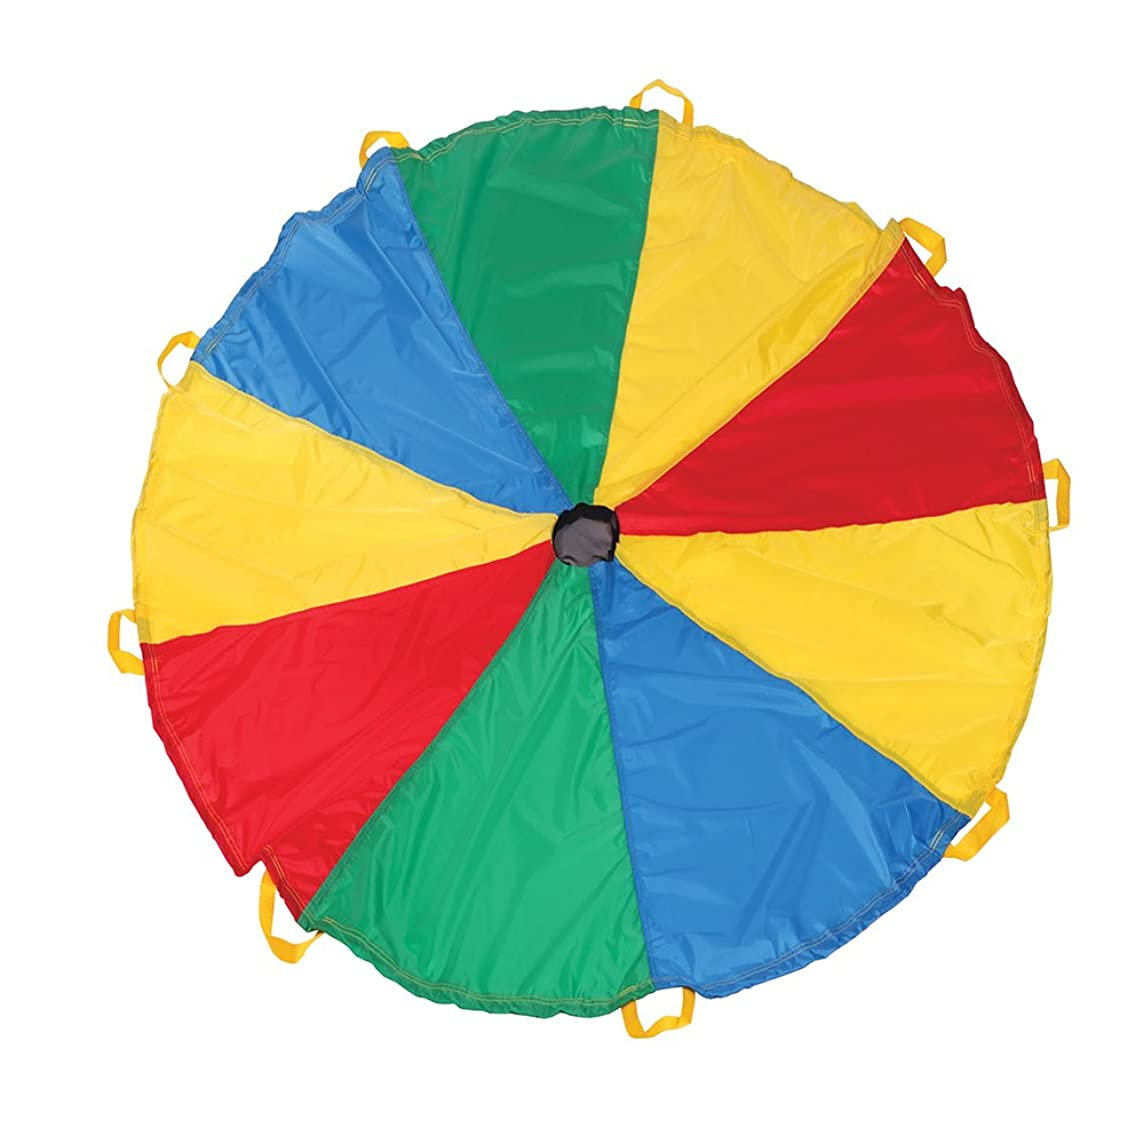 Pacific Play Tents 18005 Kids Funchute 6-Foot Parachute for Indoor / Outdoor Fun